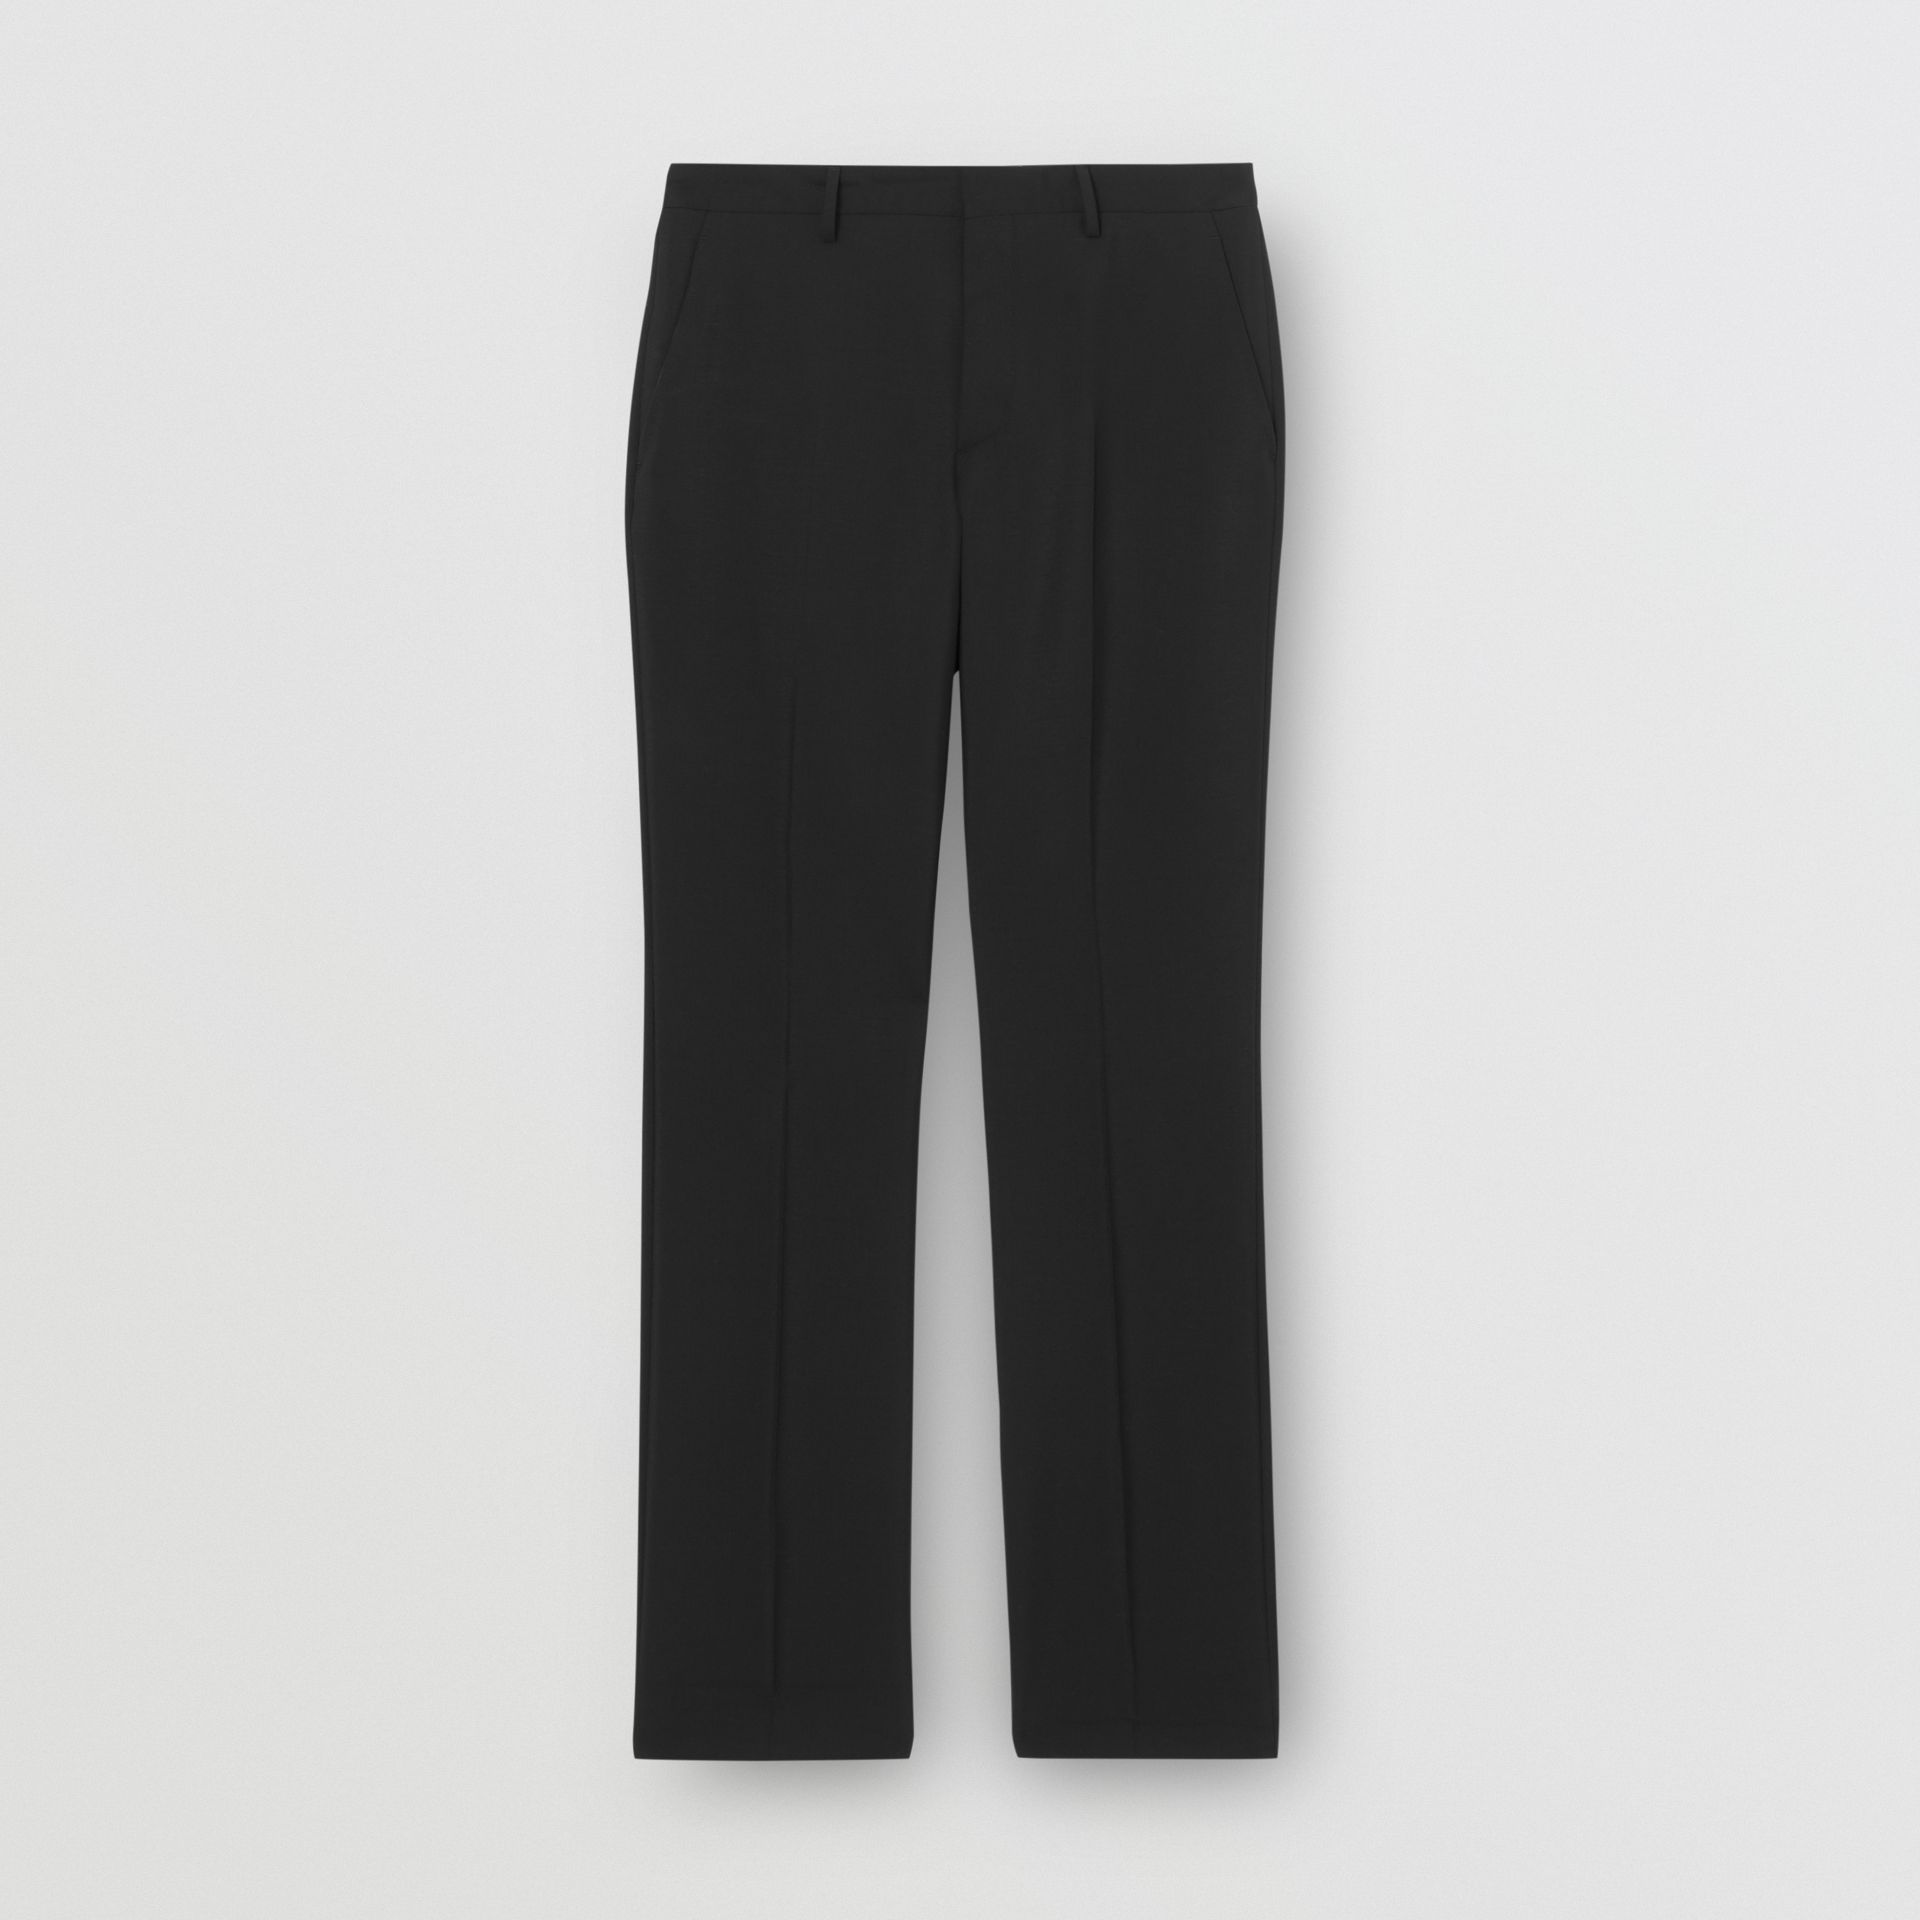 Soho Fit Bullion Stripe Wool Twill Tailored Trousers in Black - Men | Burberry United States - gallery image 3